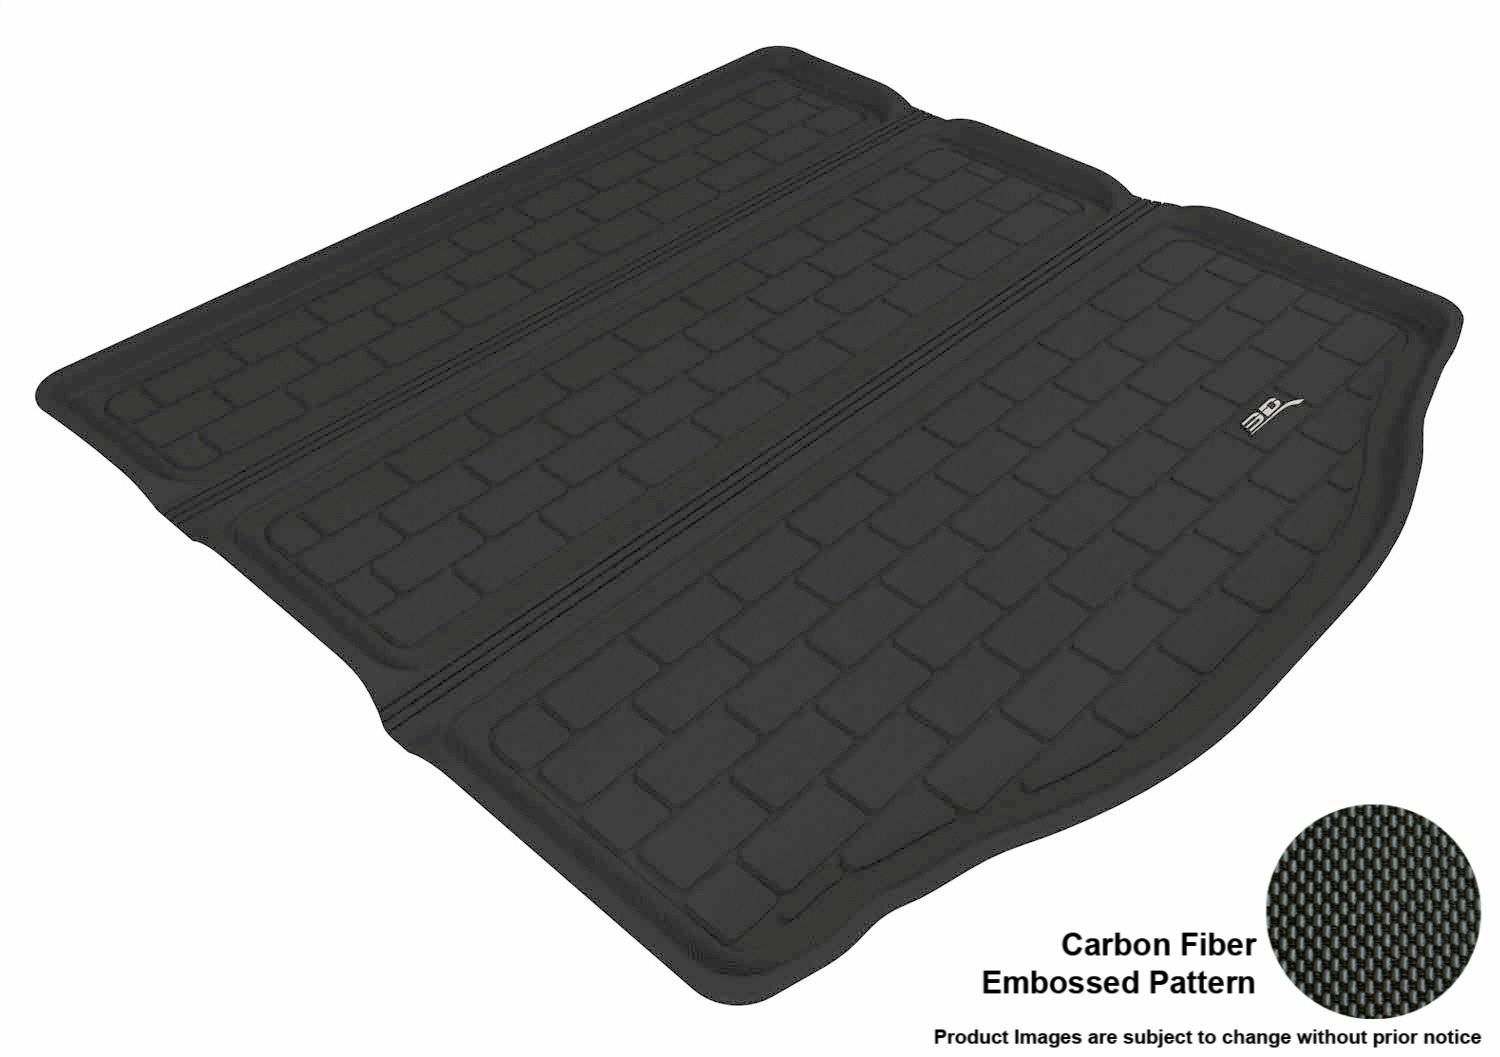 Tan Kagu Rubber 3D MAXpider Cargo Custom Fit All-Weather Floor Mat for Select Ford Focus Models